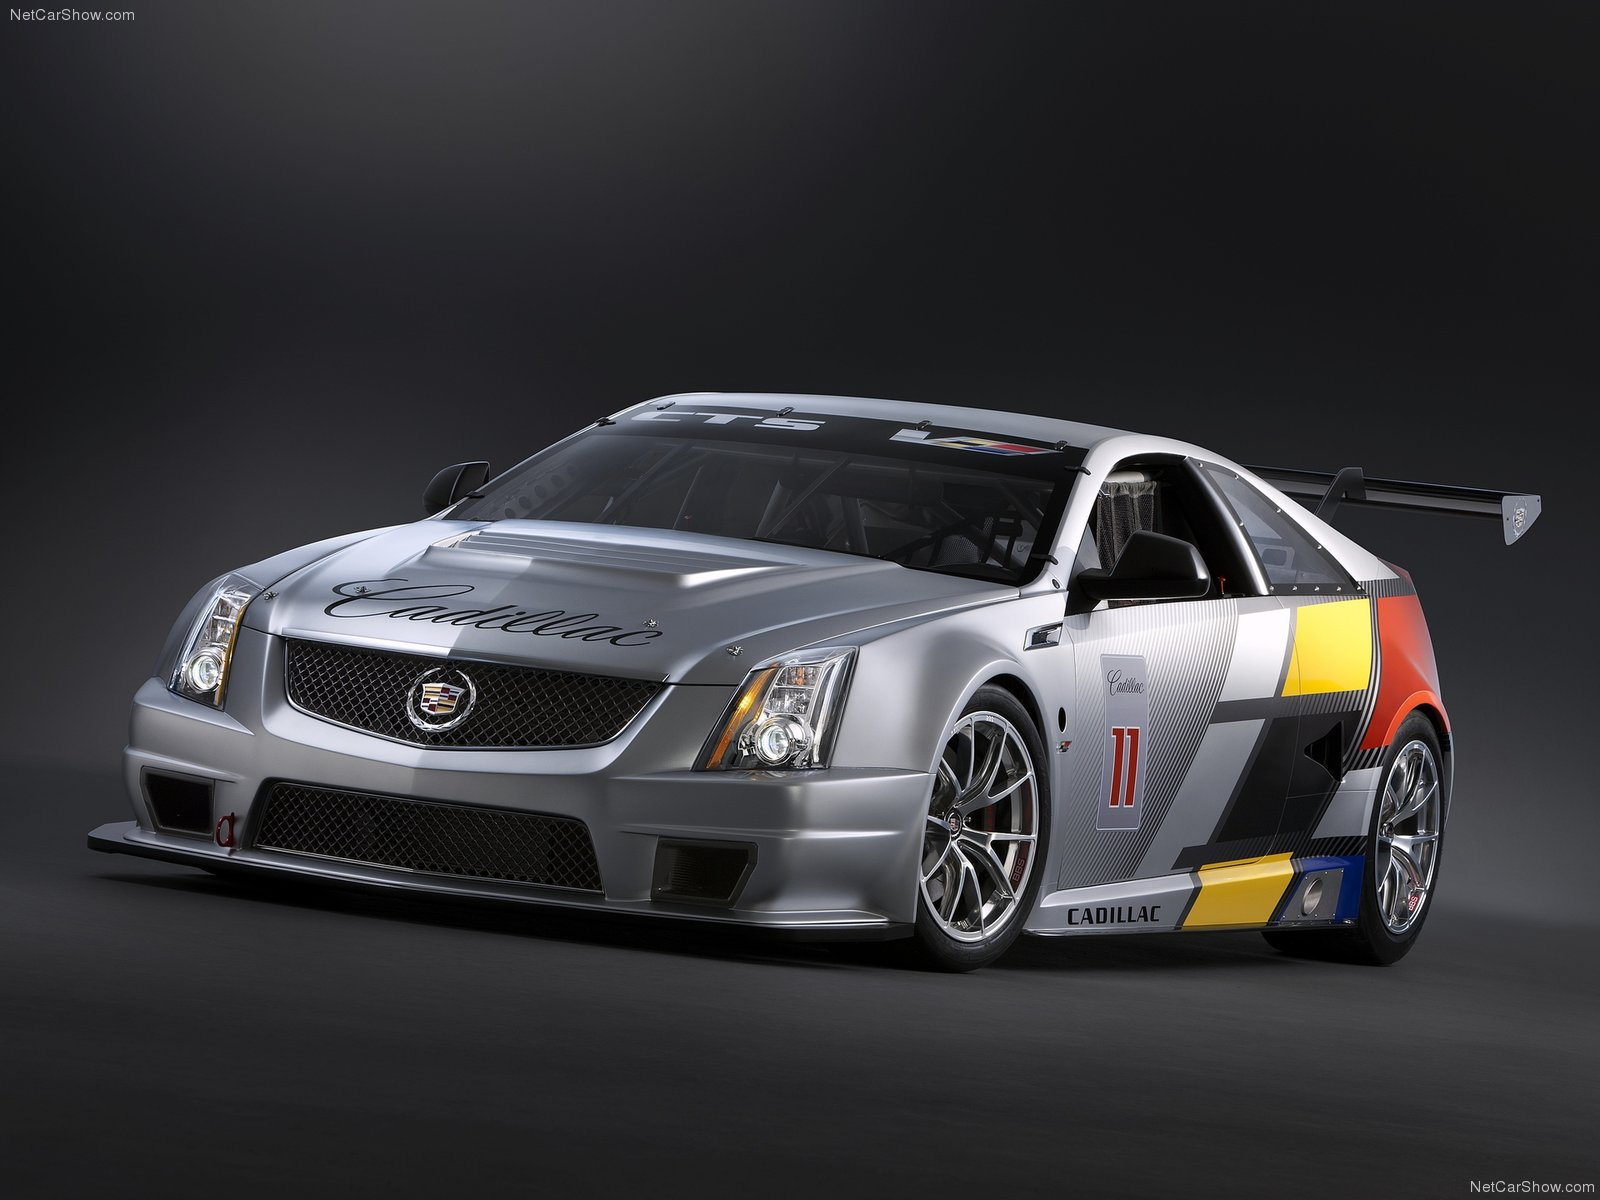 Cadillac CTS-V Coupe Race Car photo 77658